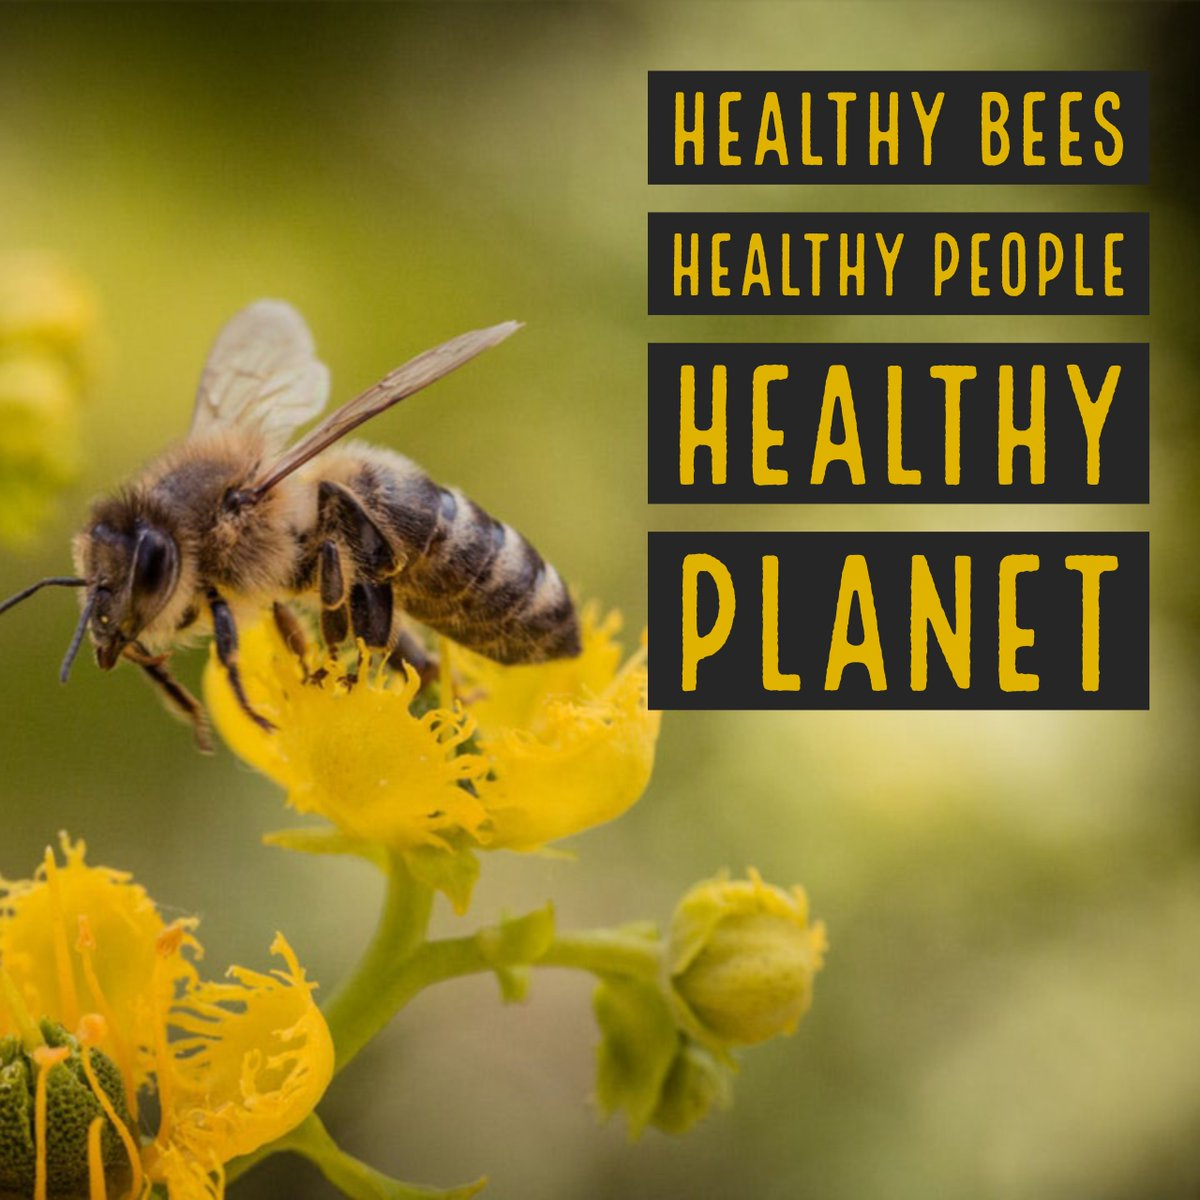 #DYK more than 40 species of bees eat corn pollen and live in corn fields? Corn growers work with the Honey Bee Health Coalition to protect bees and create healthy habitats! Learn more here: https://bit.ly/2OYtzB3 #TexasCorn #savethebees